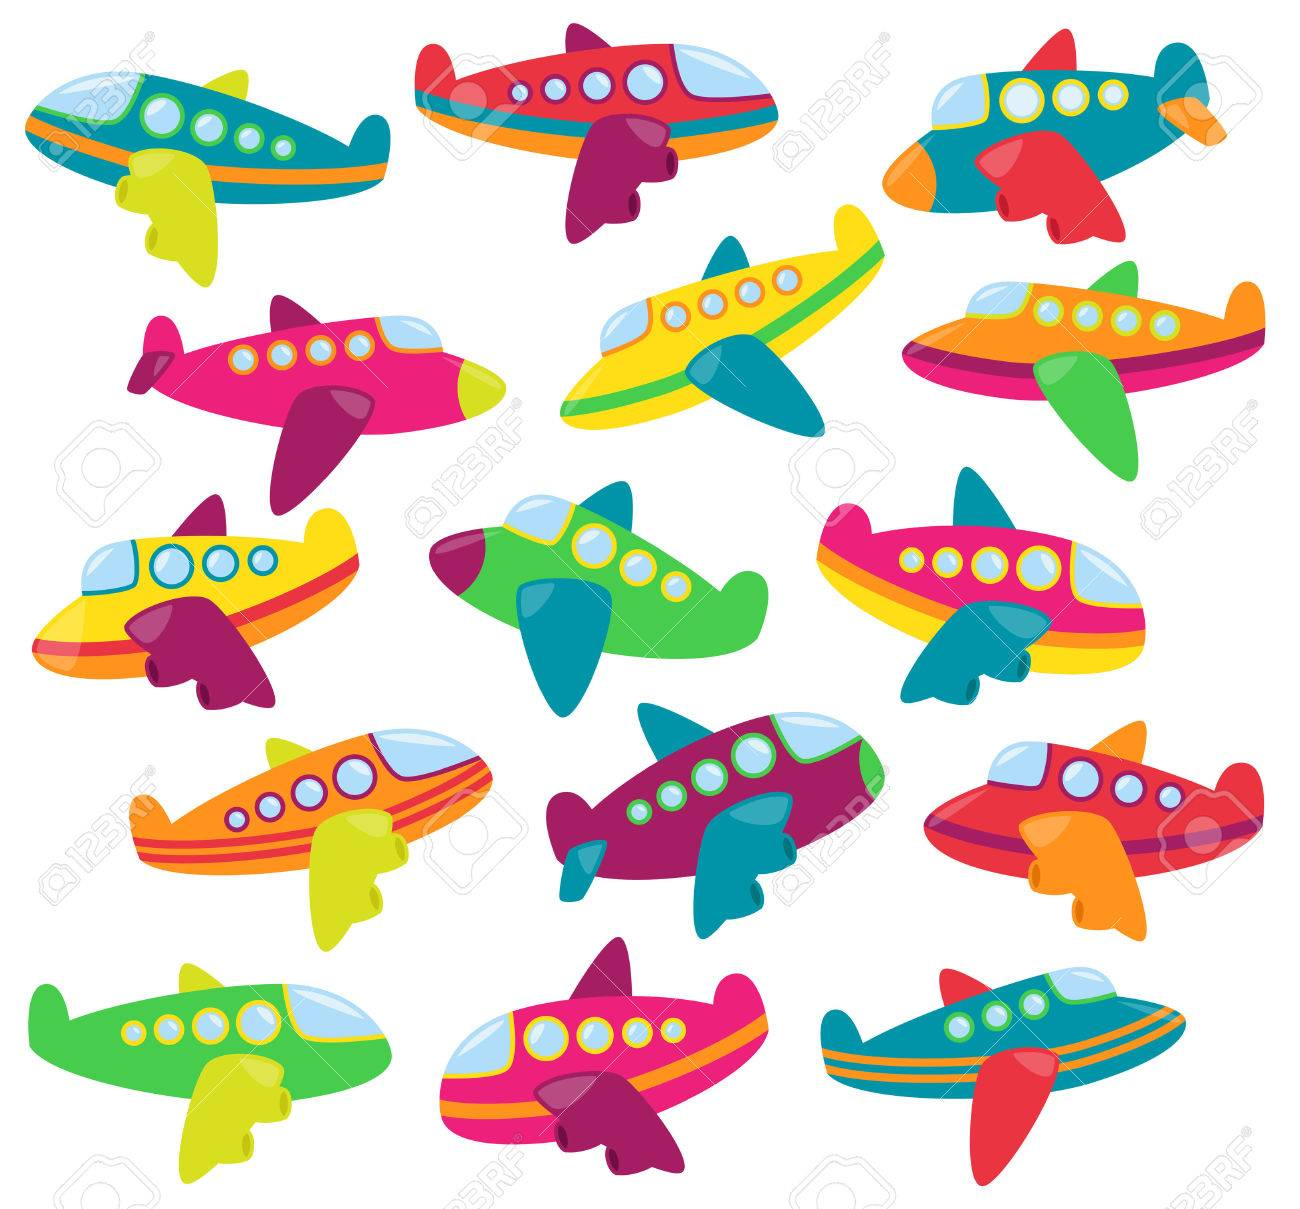 Vector Collection of Cute Airplanes or Airplane Toys - 44197463